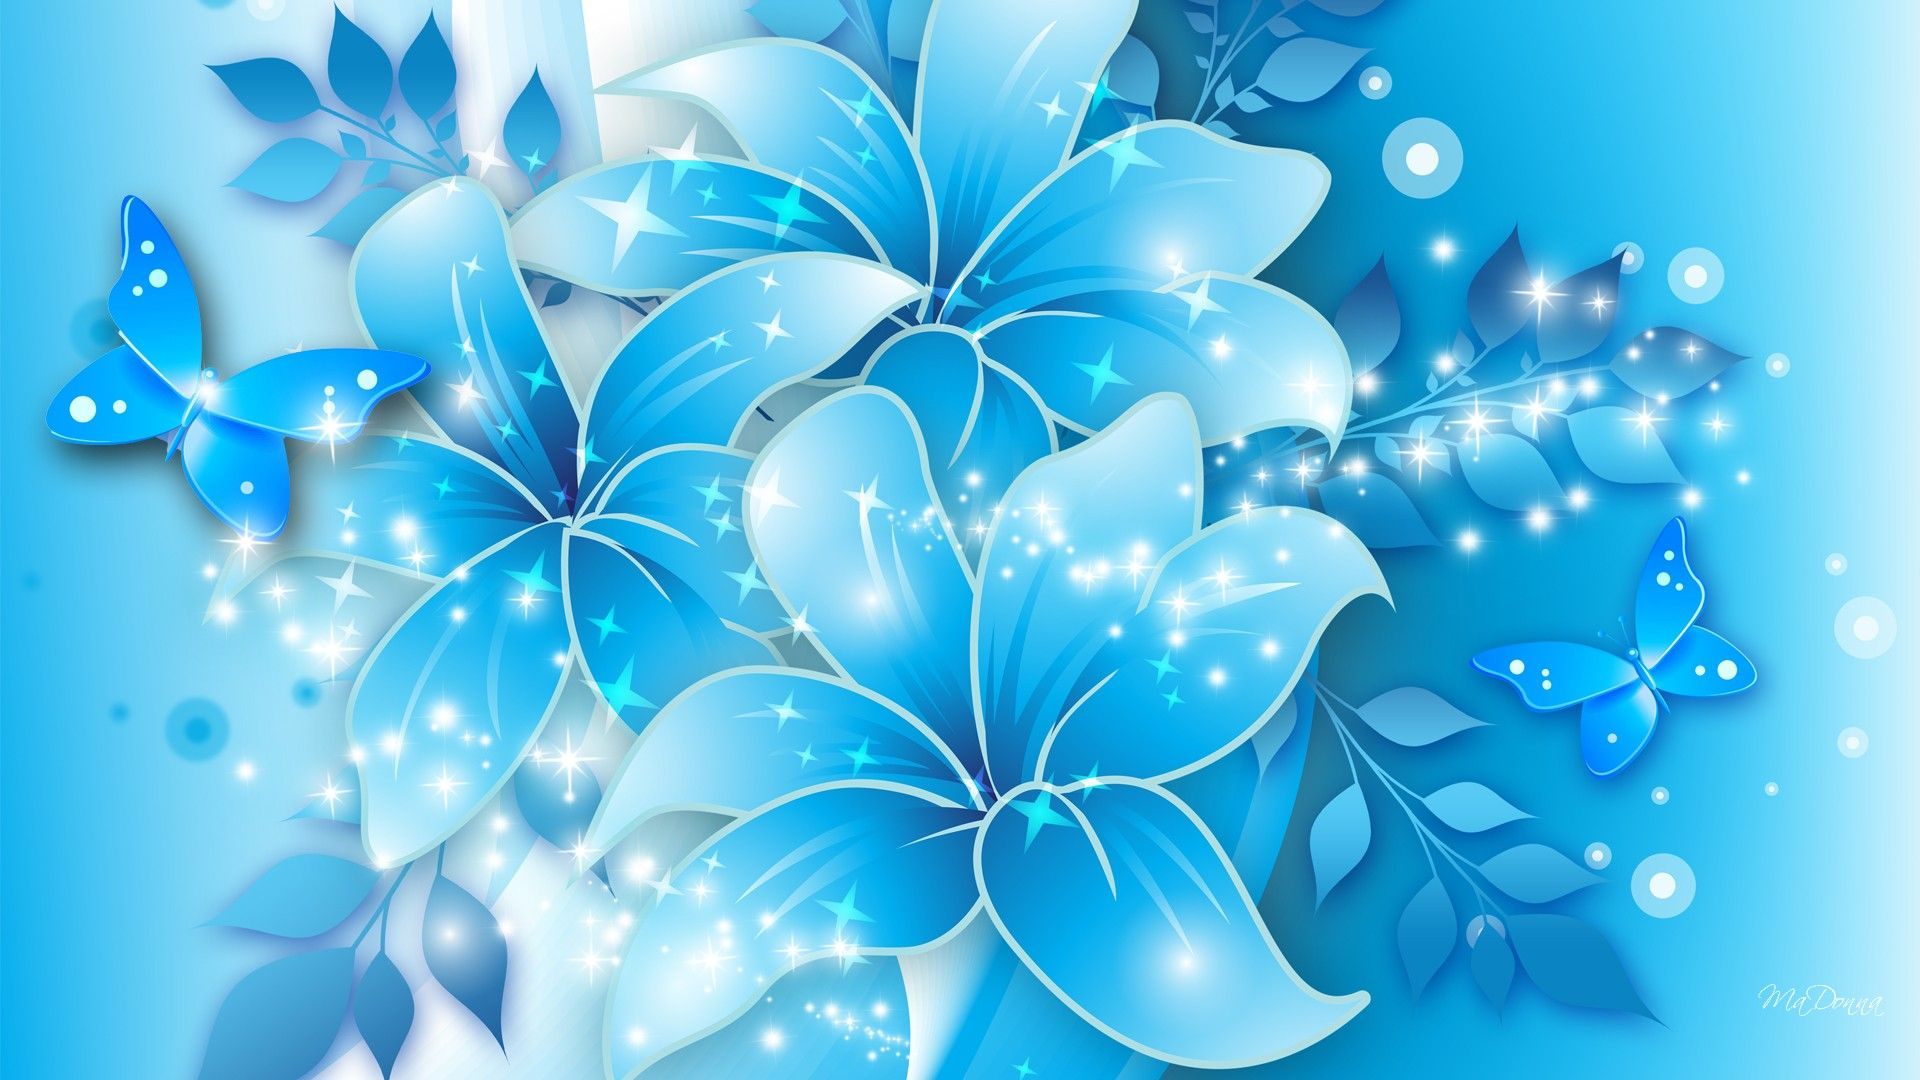 pretty blue backgrounds - wallpaper cave | beautiful | pinterest